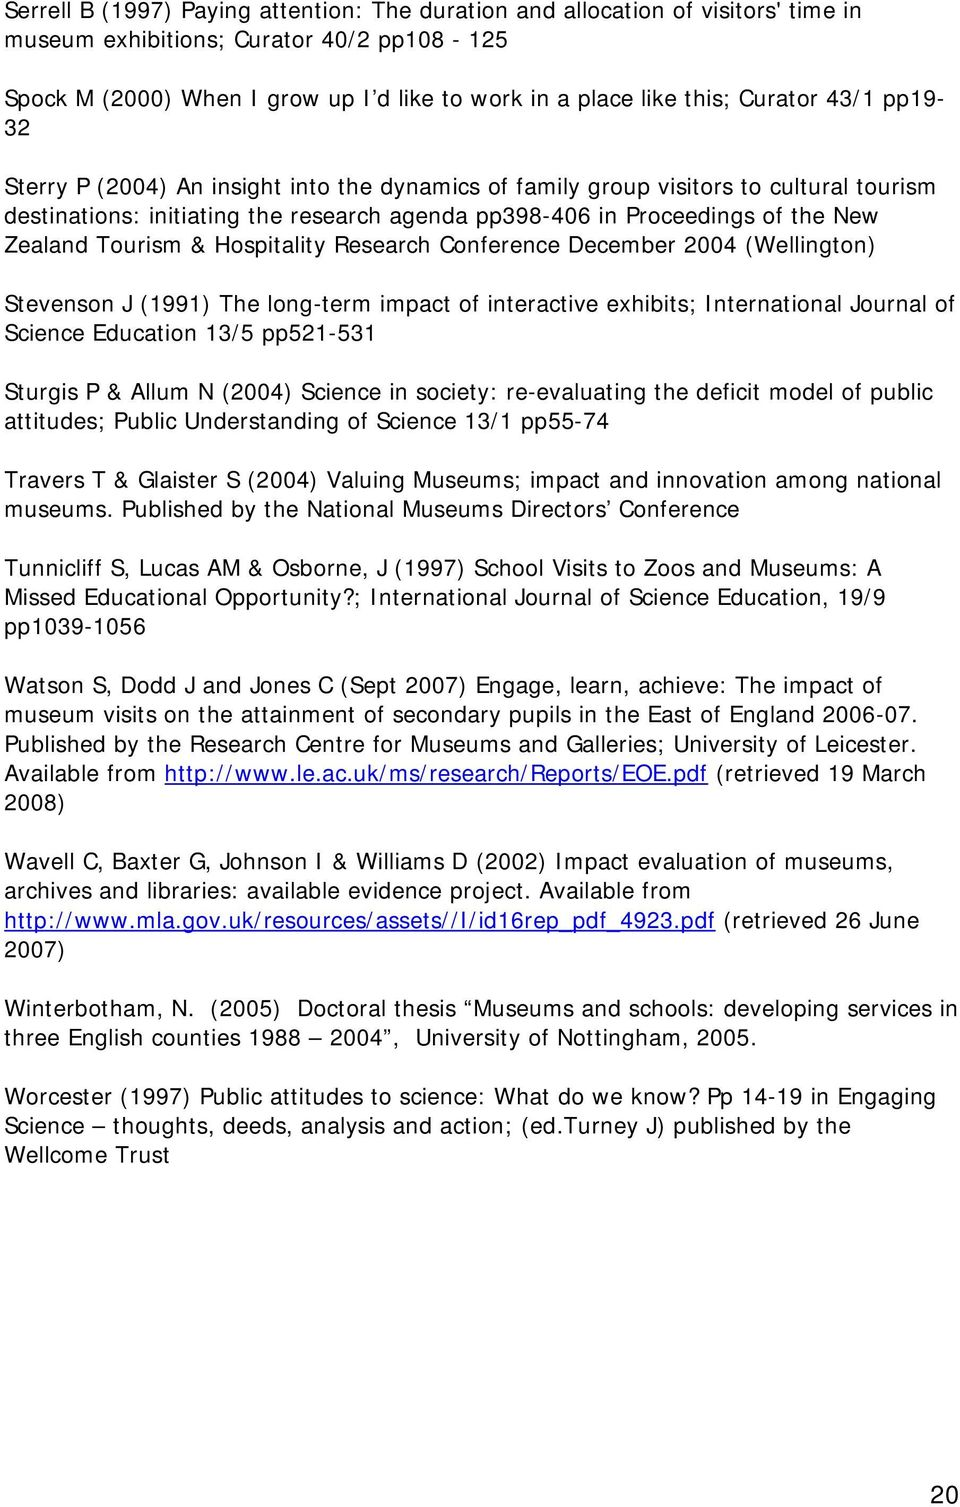 Tourism & Hospitality Research Conference December 2004 (Wellington) Stevenson J (1991) The long-term impact of interactive exhibits; International Journal of Science Education 13/5 pp521-531 Sturgis